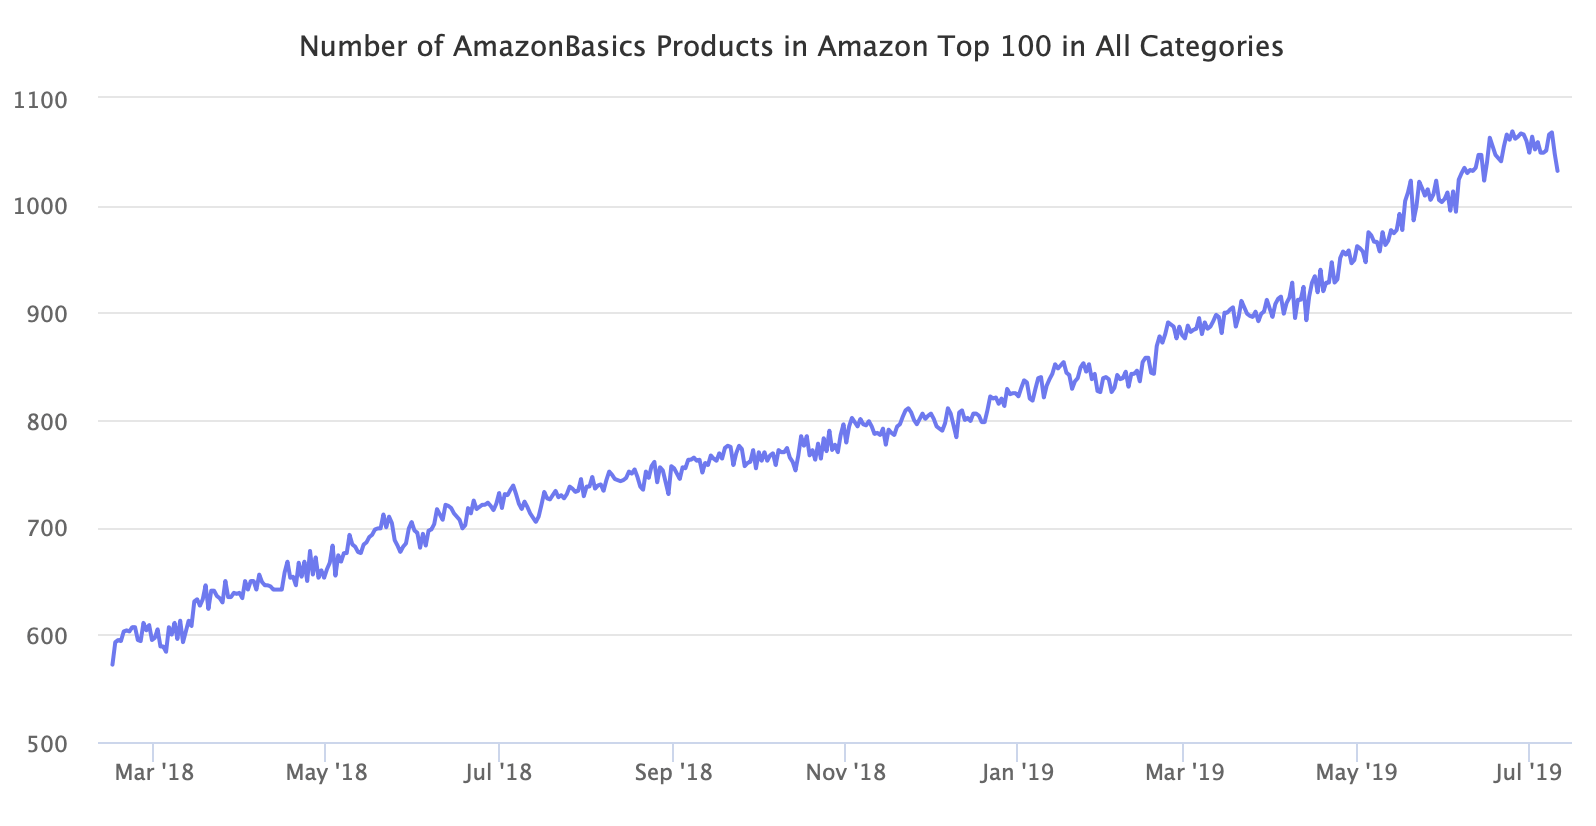 Number of AmazonBasics Products in Amazon Top 100 in All Categories